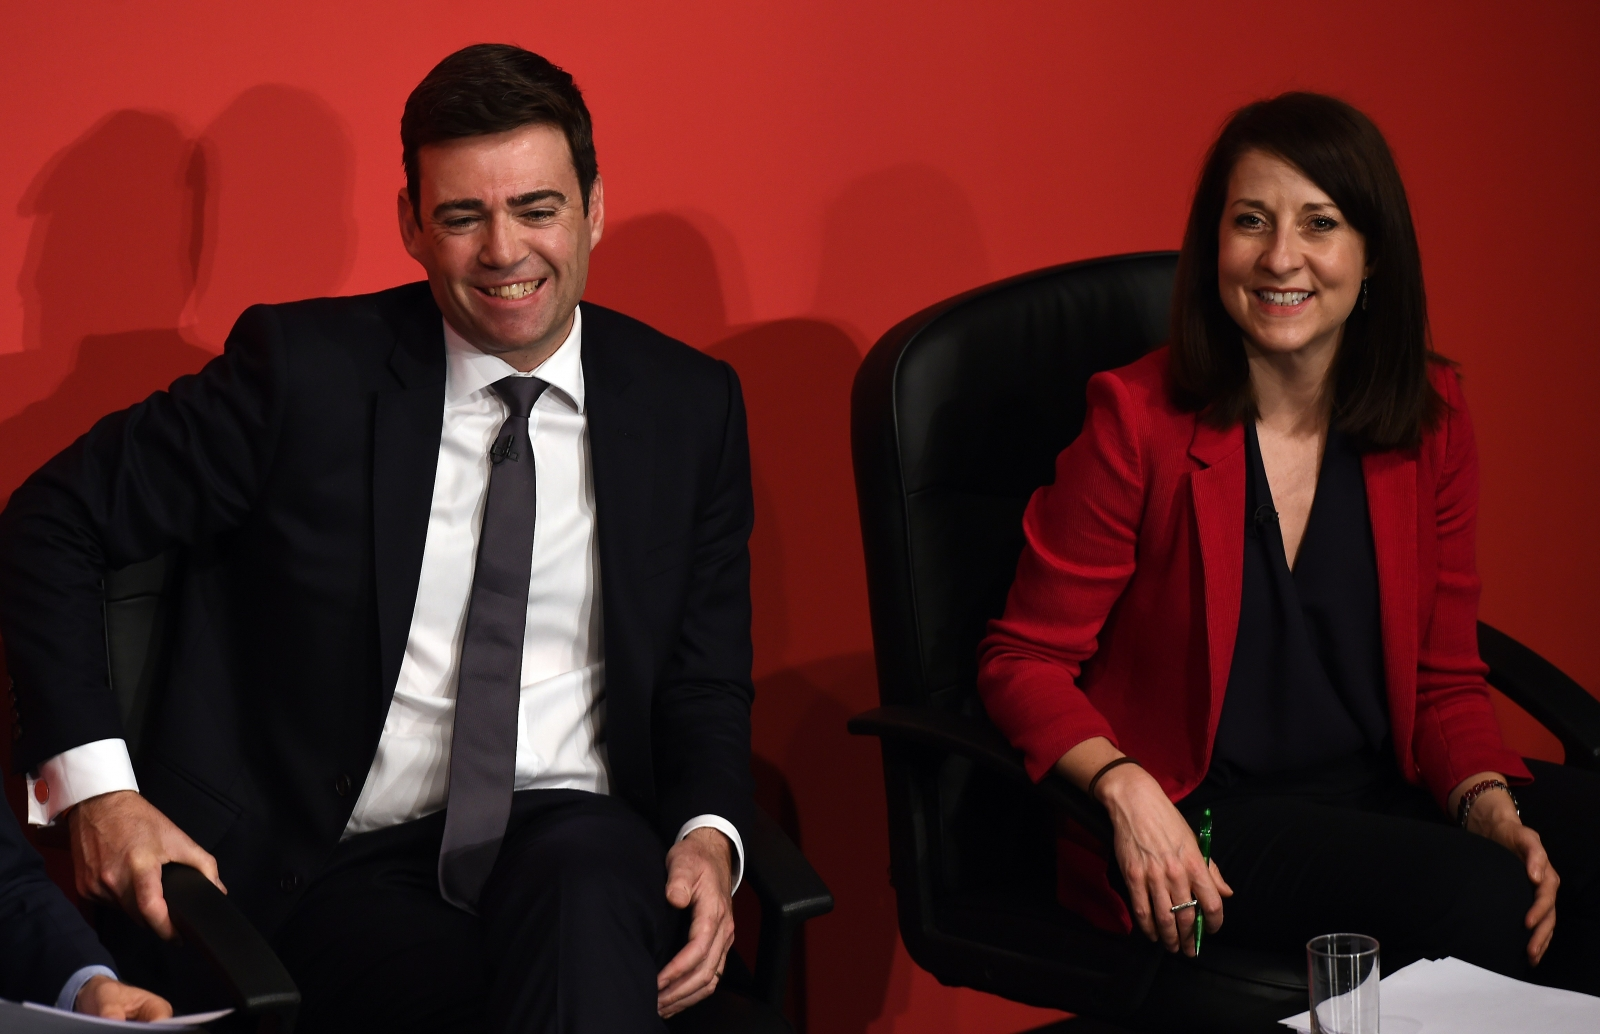 Andy Burnham and Liz Kendall